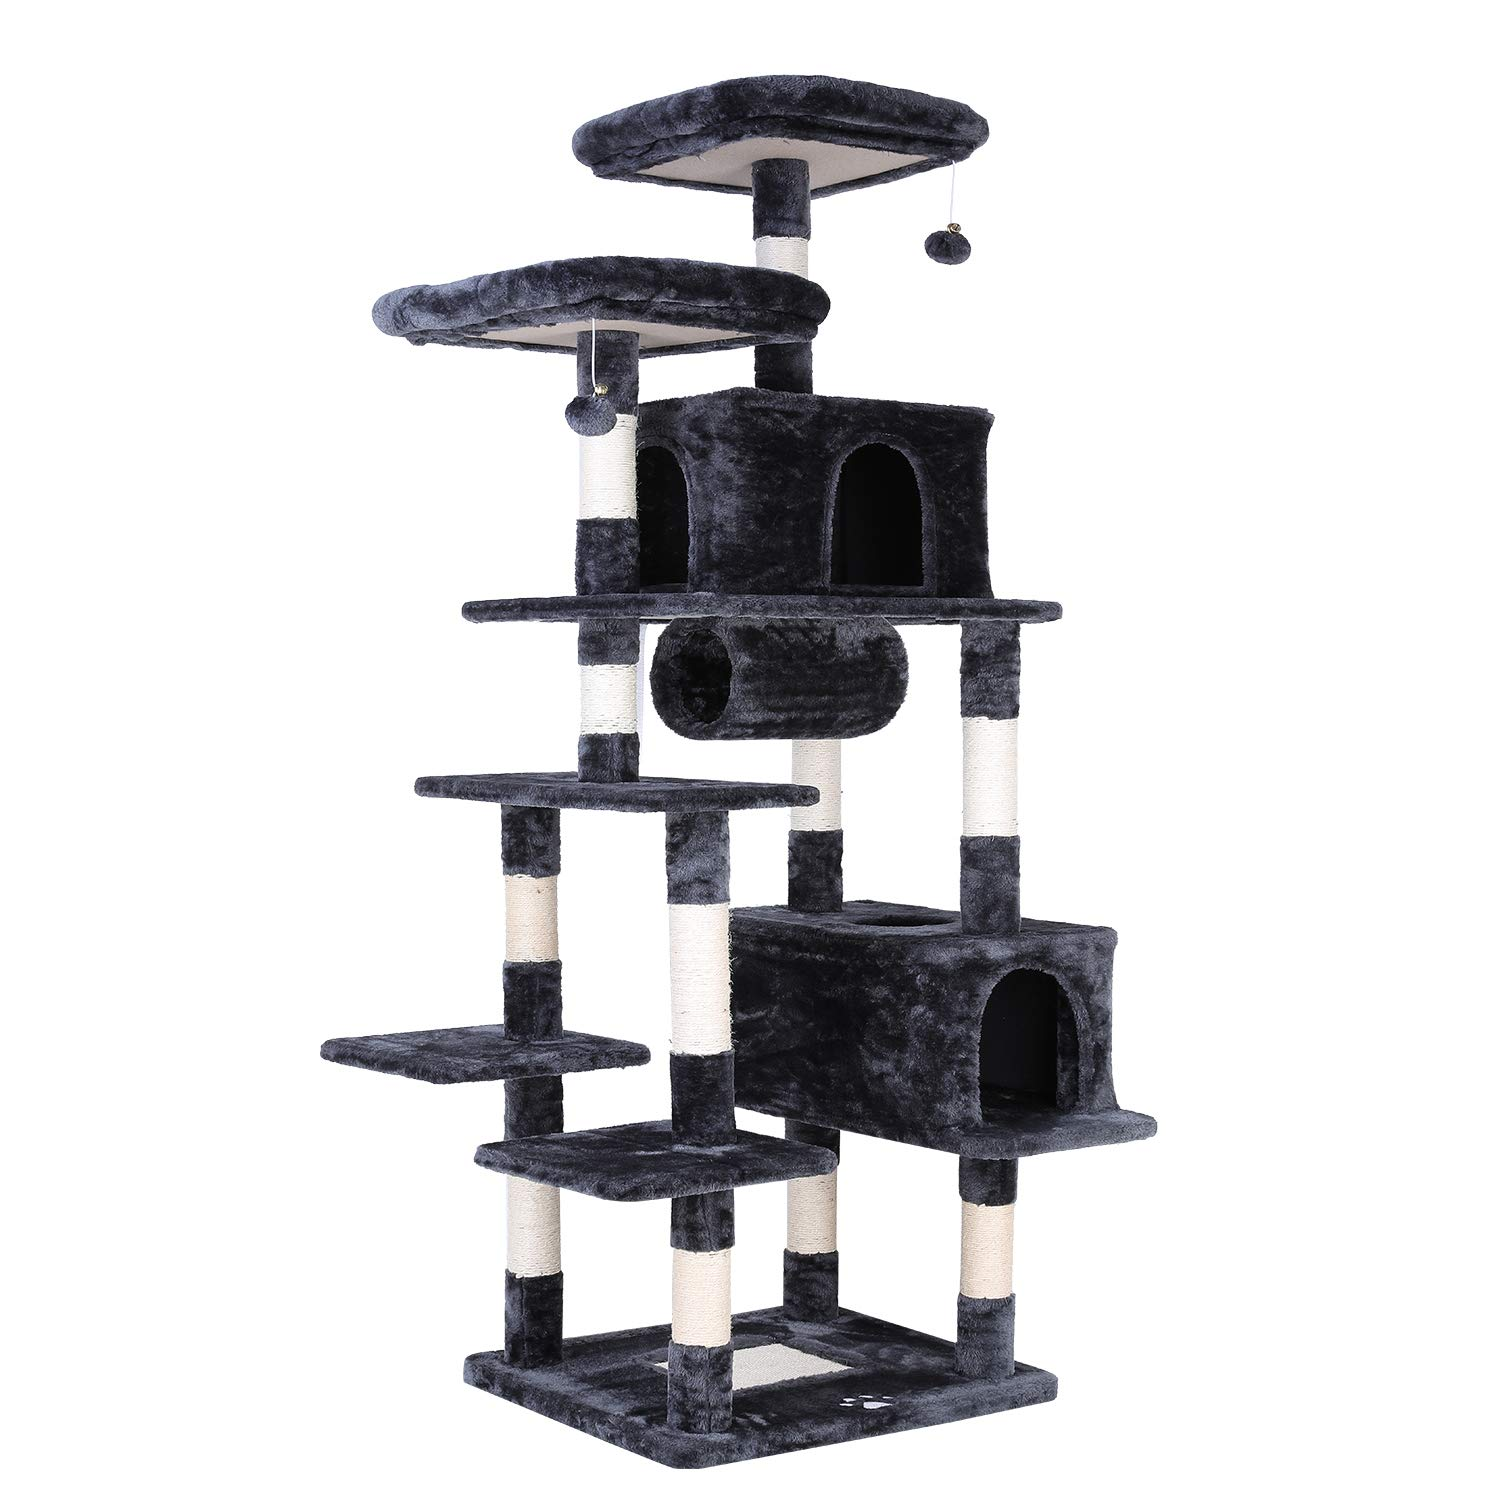 POTBY 80'' Multi-Level Cat Tree Large Play House Climber Activity Centre Tower Stand Furniture, with Scratching Posts, Dangling Ball,Condo and Tunnel, Anti-toppling Device,Suit for Kittens Cats and Pet by POTBY